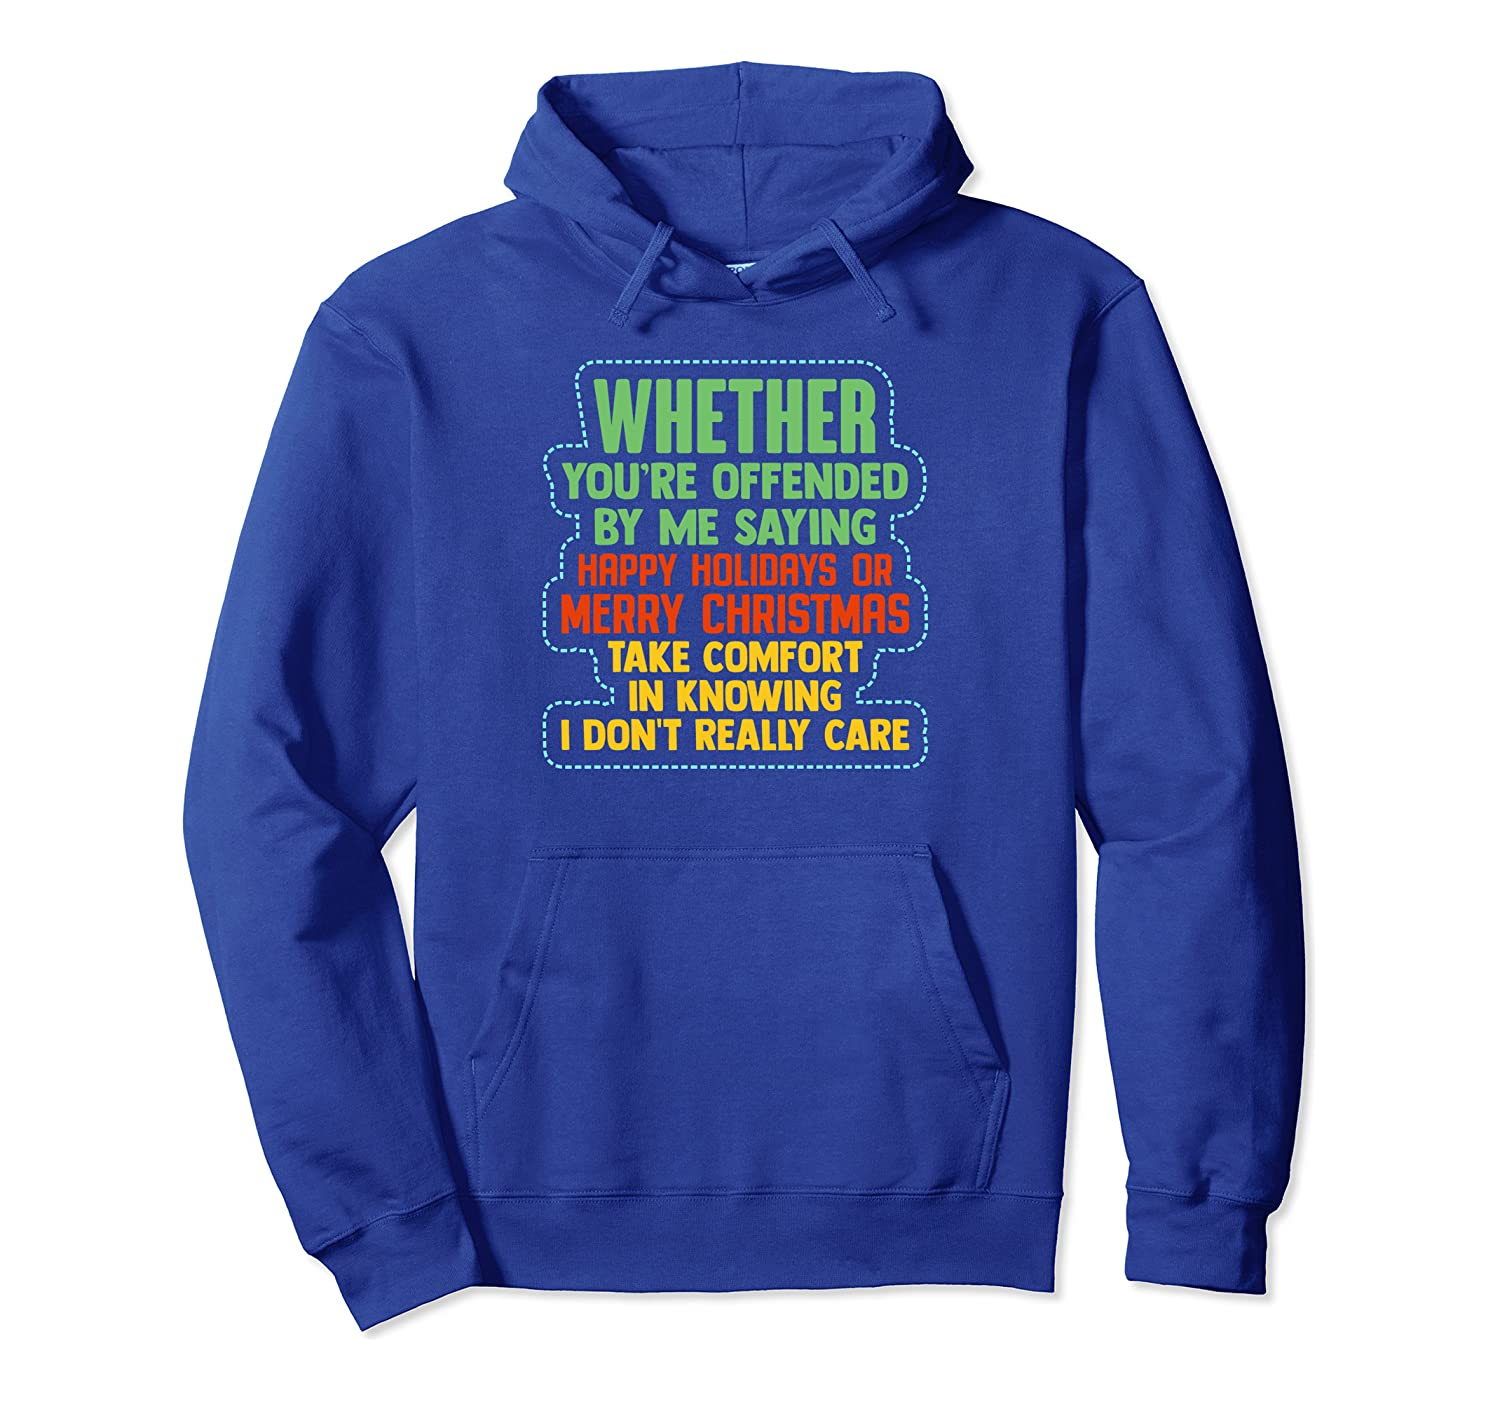 Offended By Me Saying Happy Holidays? I Don't Really Care Pullover Hoodie